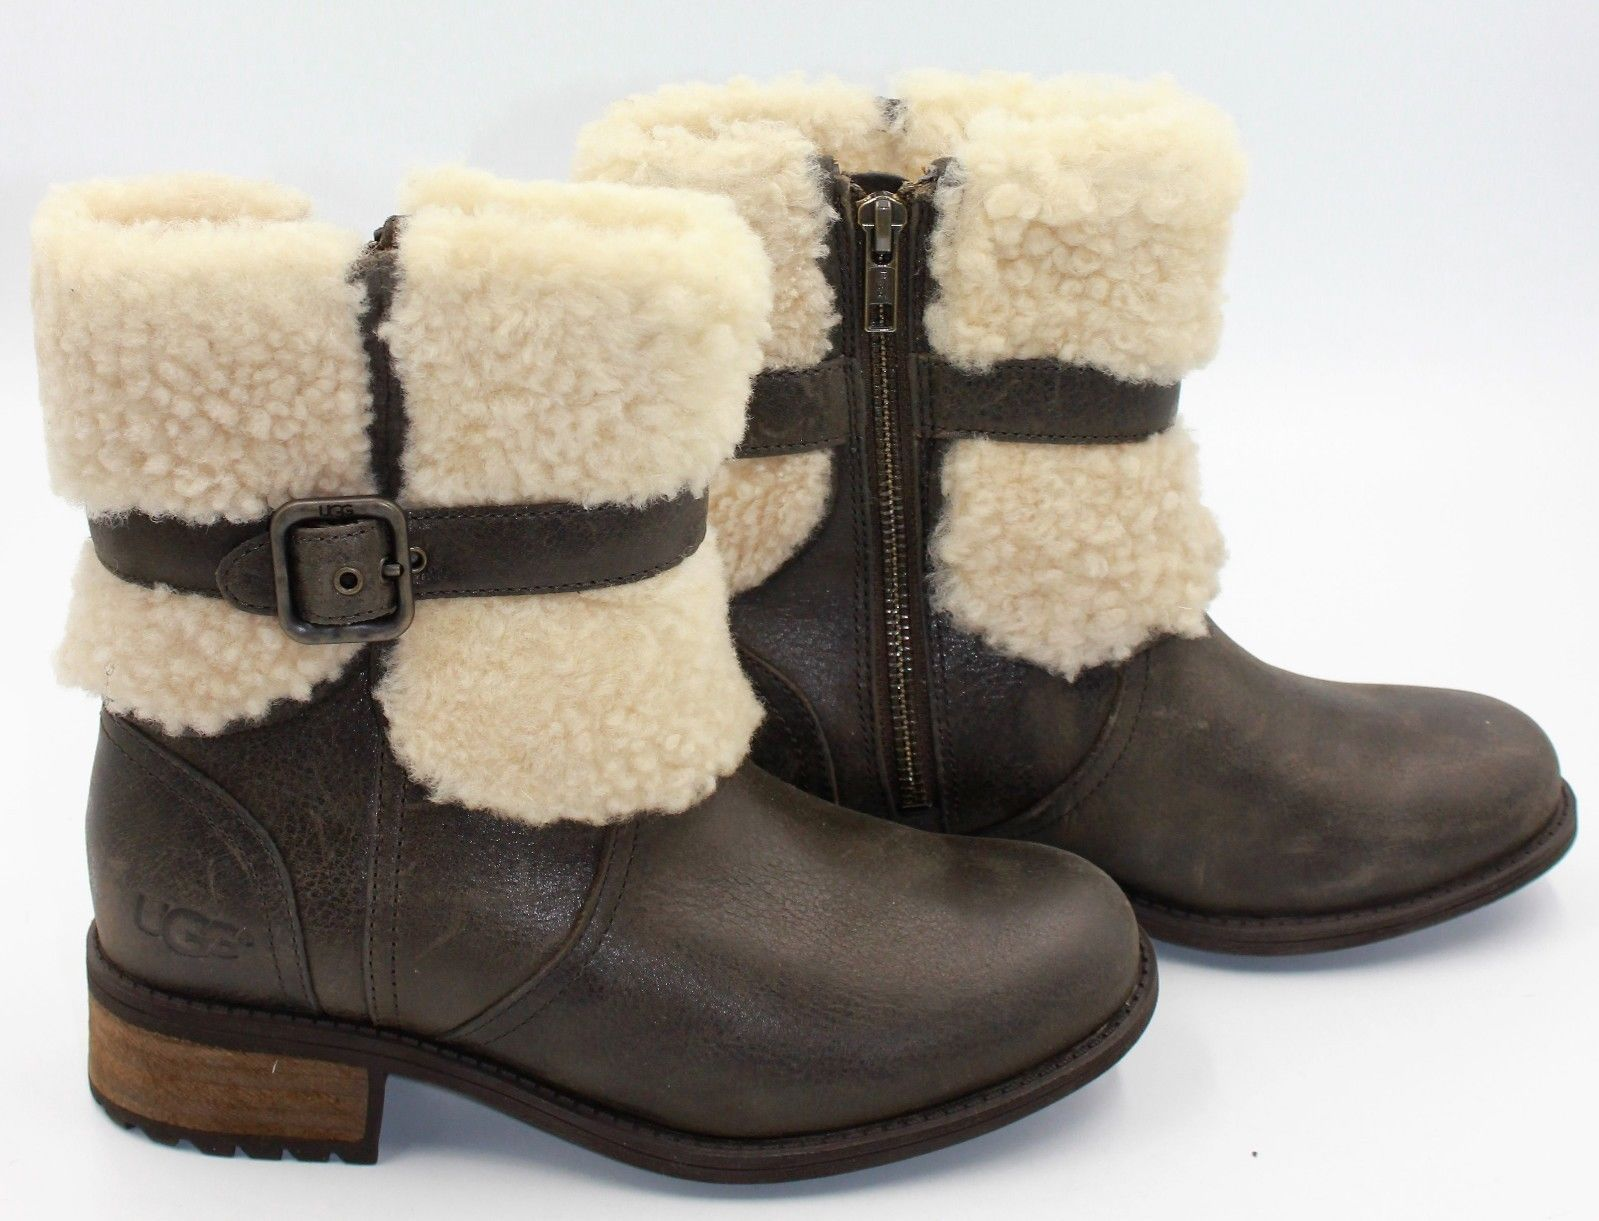 2aa398a82fb UGG Blayre II Women's Winter Boot - Lodge and 50 similar items